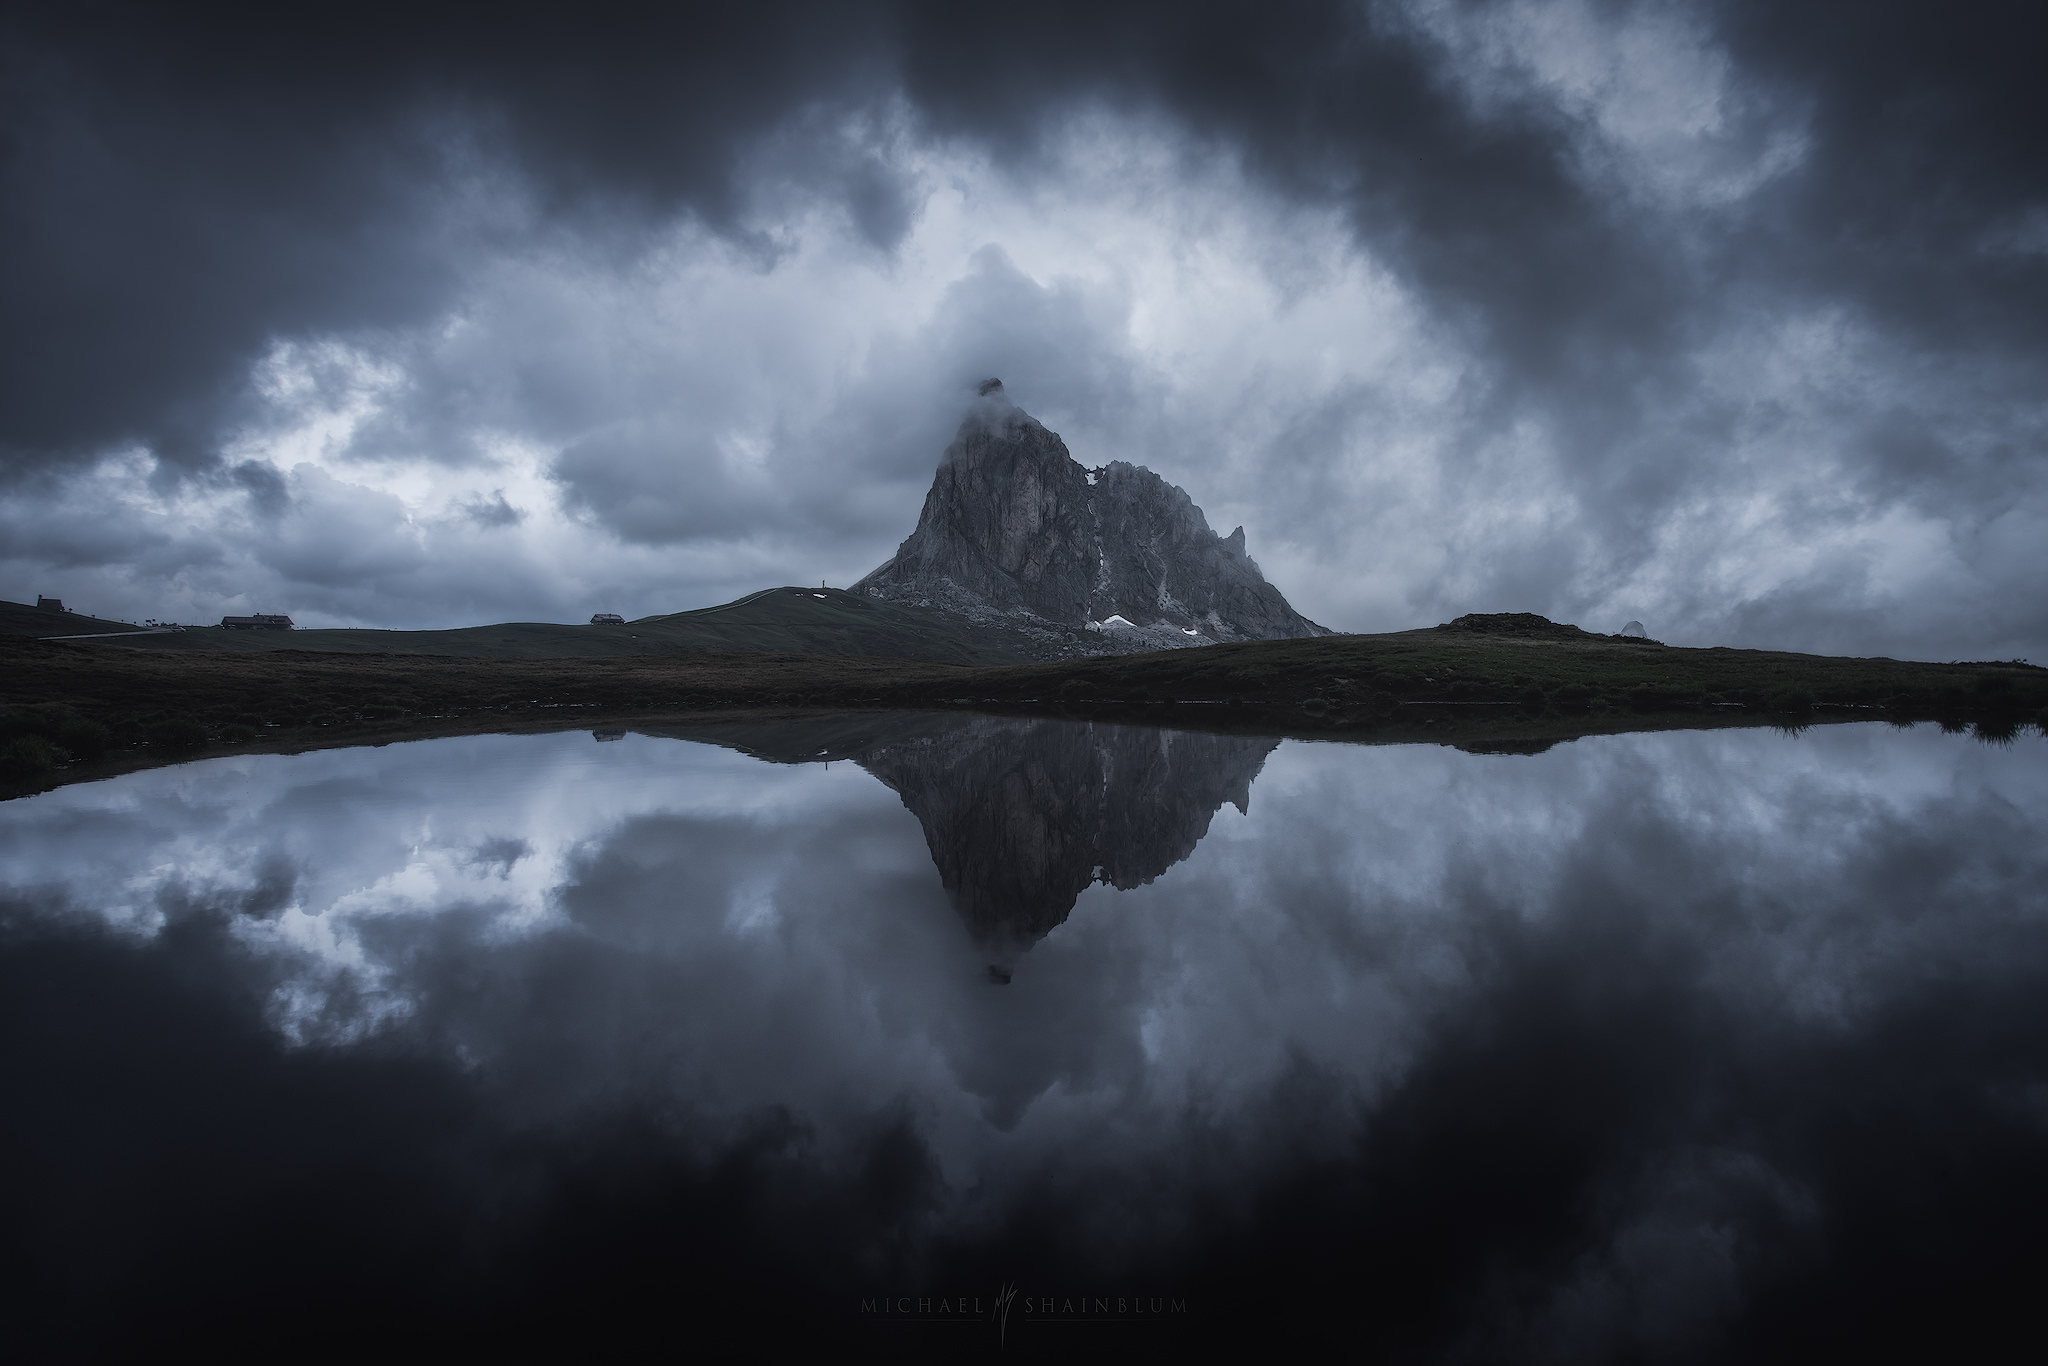 Landscape photography in the Dolomites. Stormy mountain, Passo Giau.